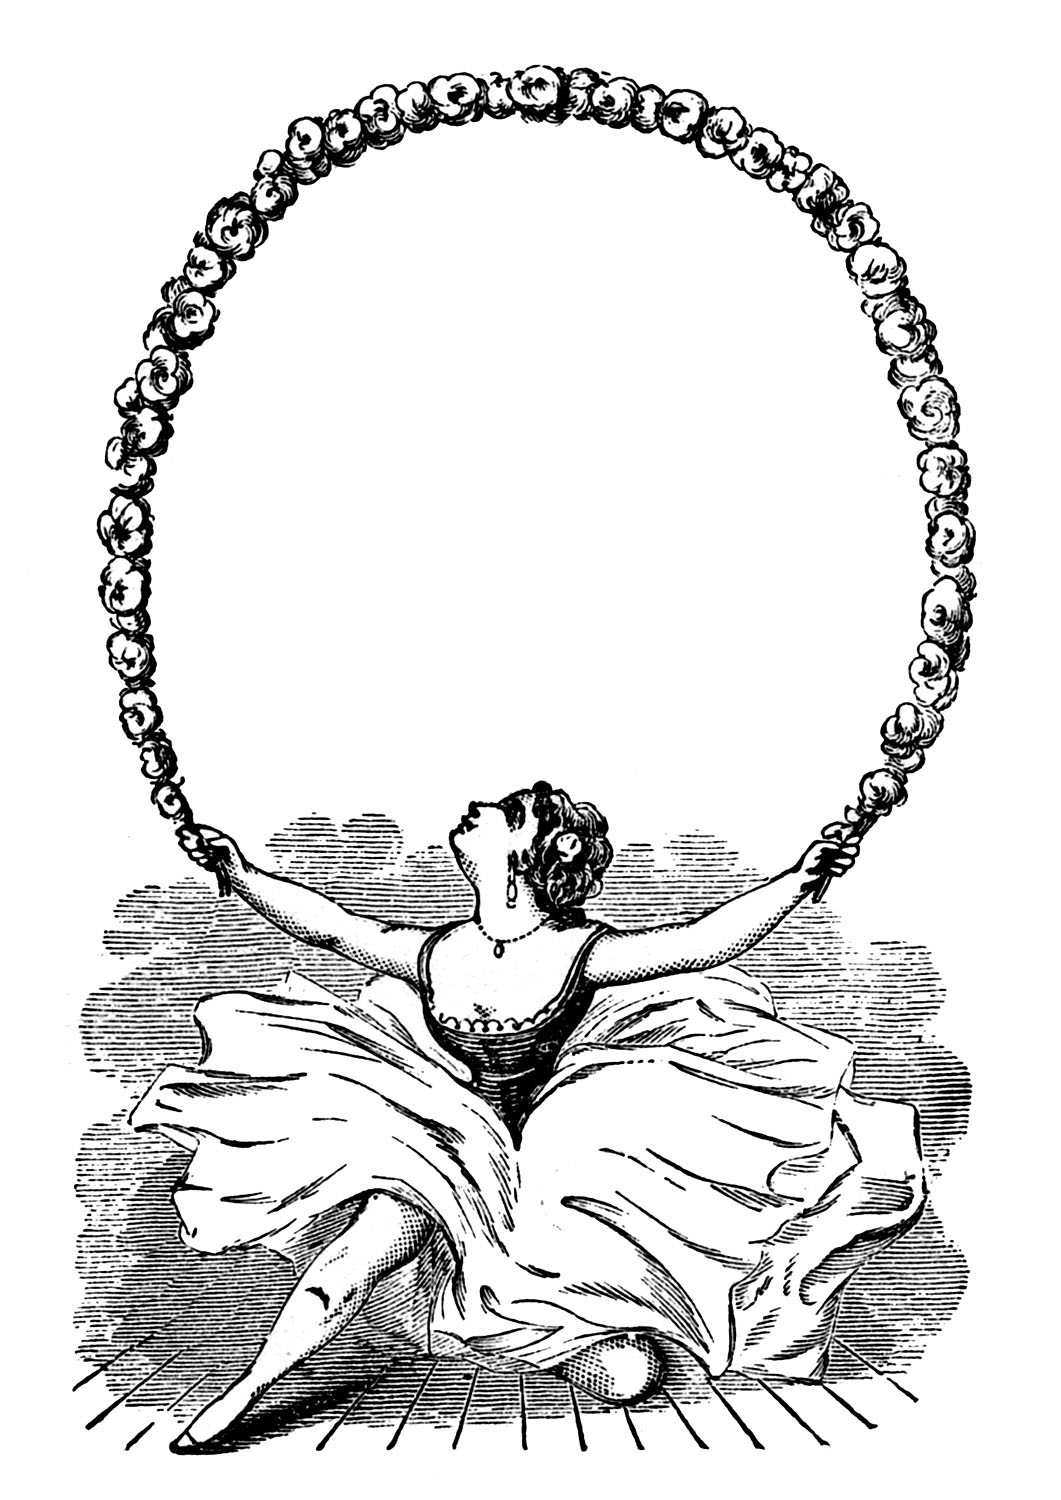 Vintage Clip Art - Ballerina with Garland - Graphic Frame ...